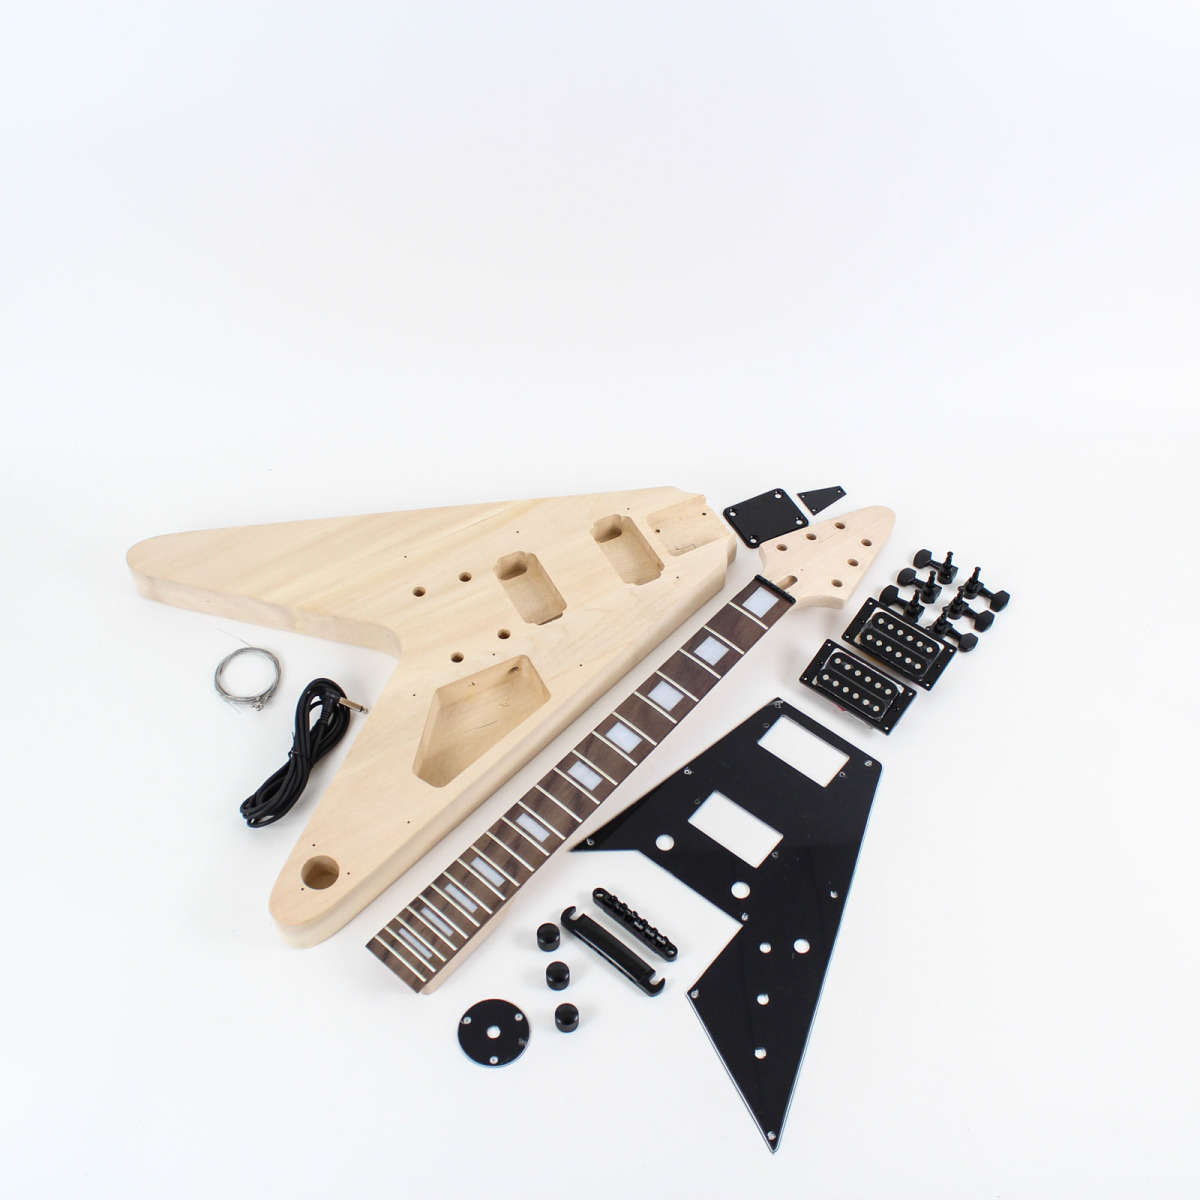 gibson flying v style guitar kit diy guitars. Black Bedroom Furniture Sets. Home Design Ideas